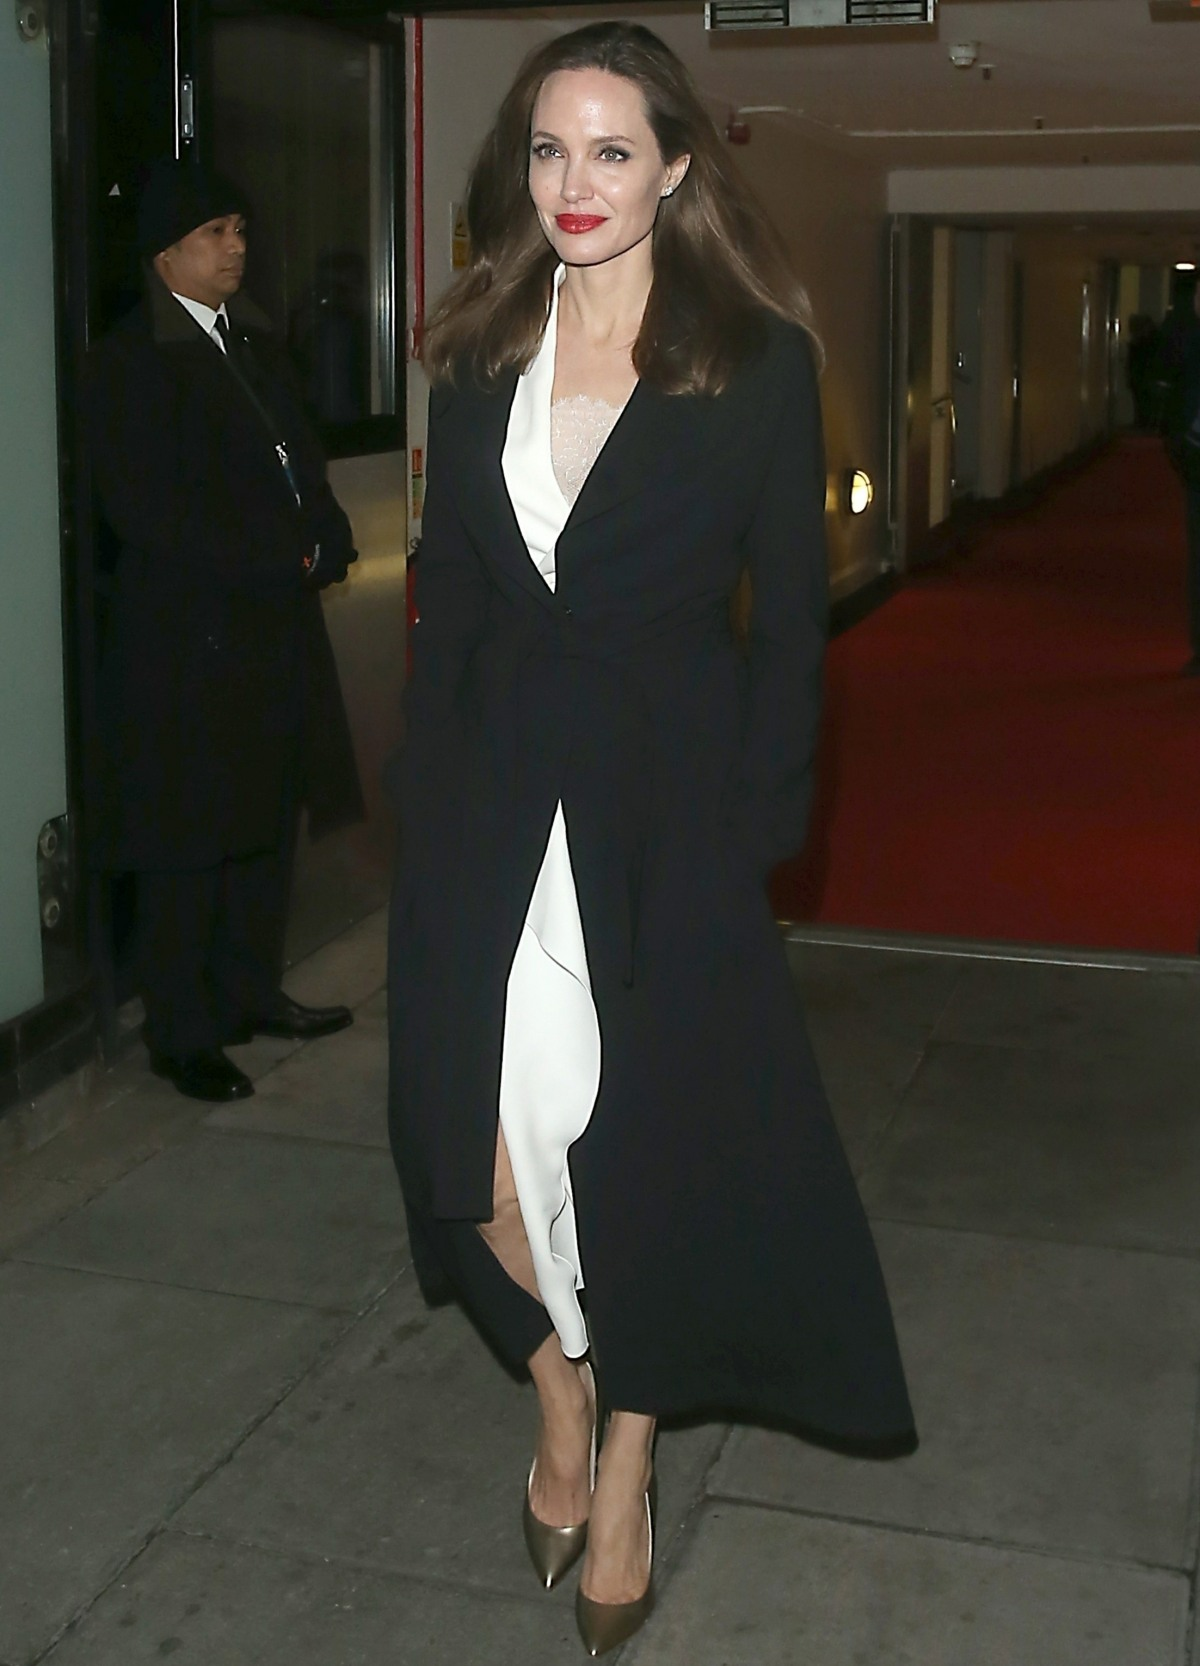 Angelina Jolie leaves The BFI after attending a Sexual Violence seminar